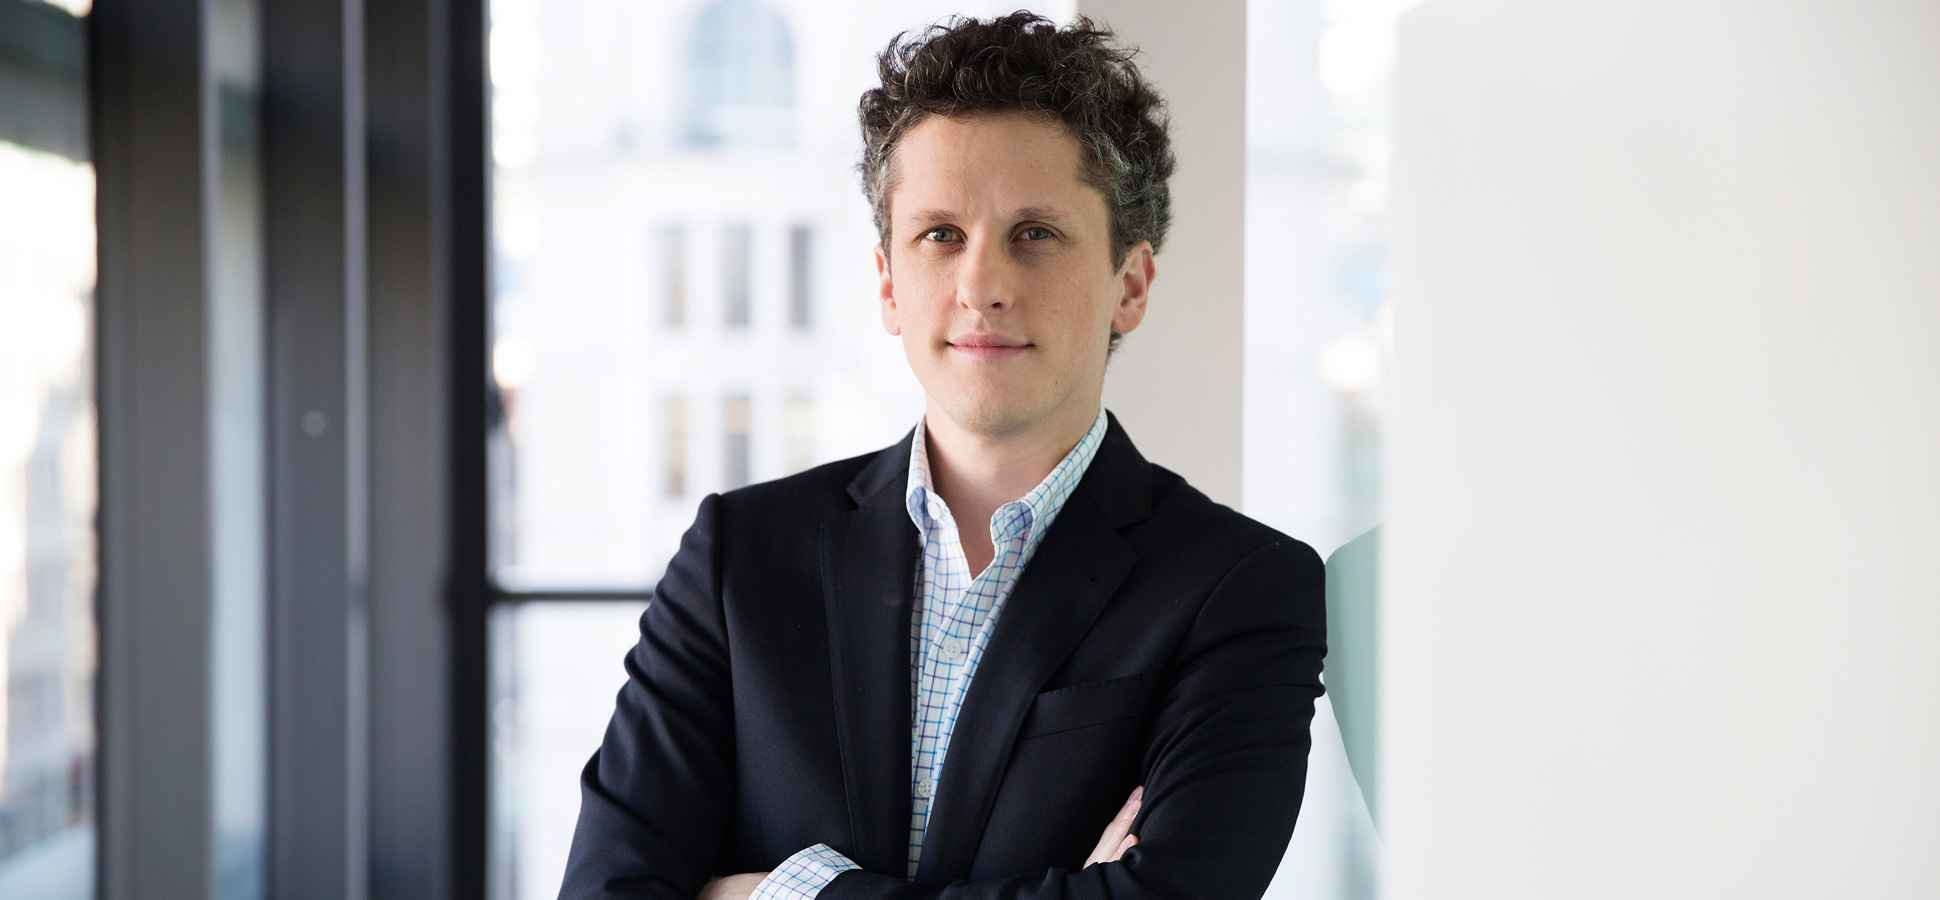 Don't Bet Against Aaron Levie